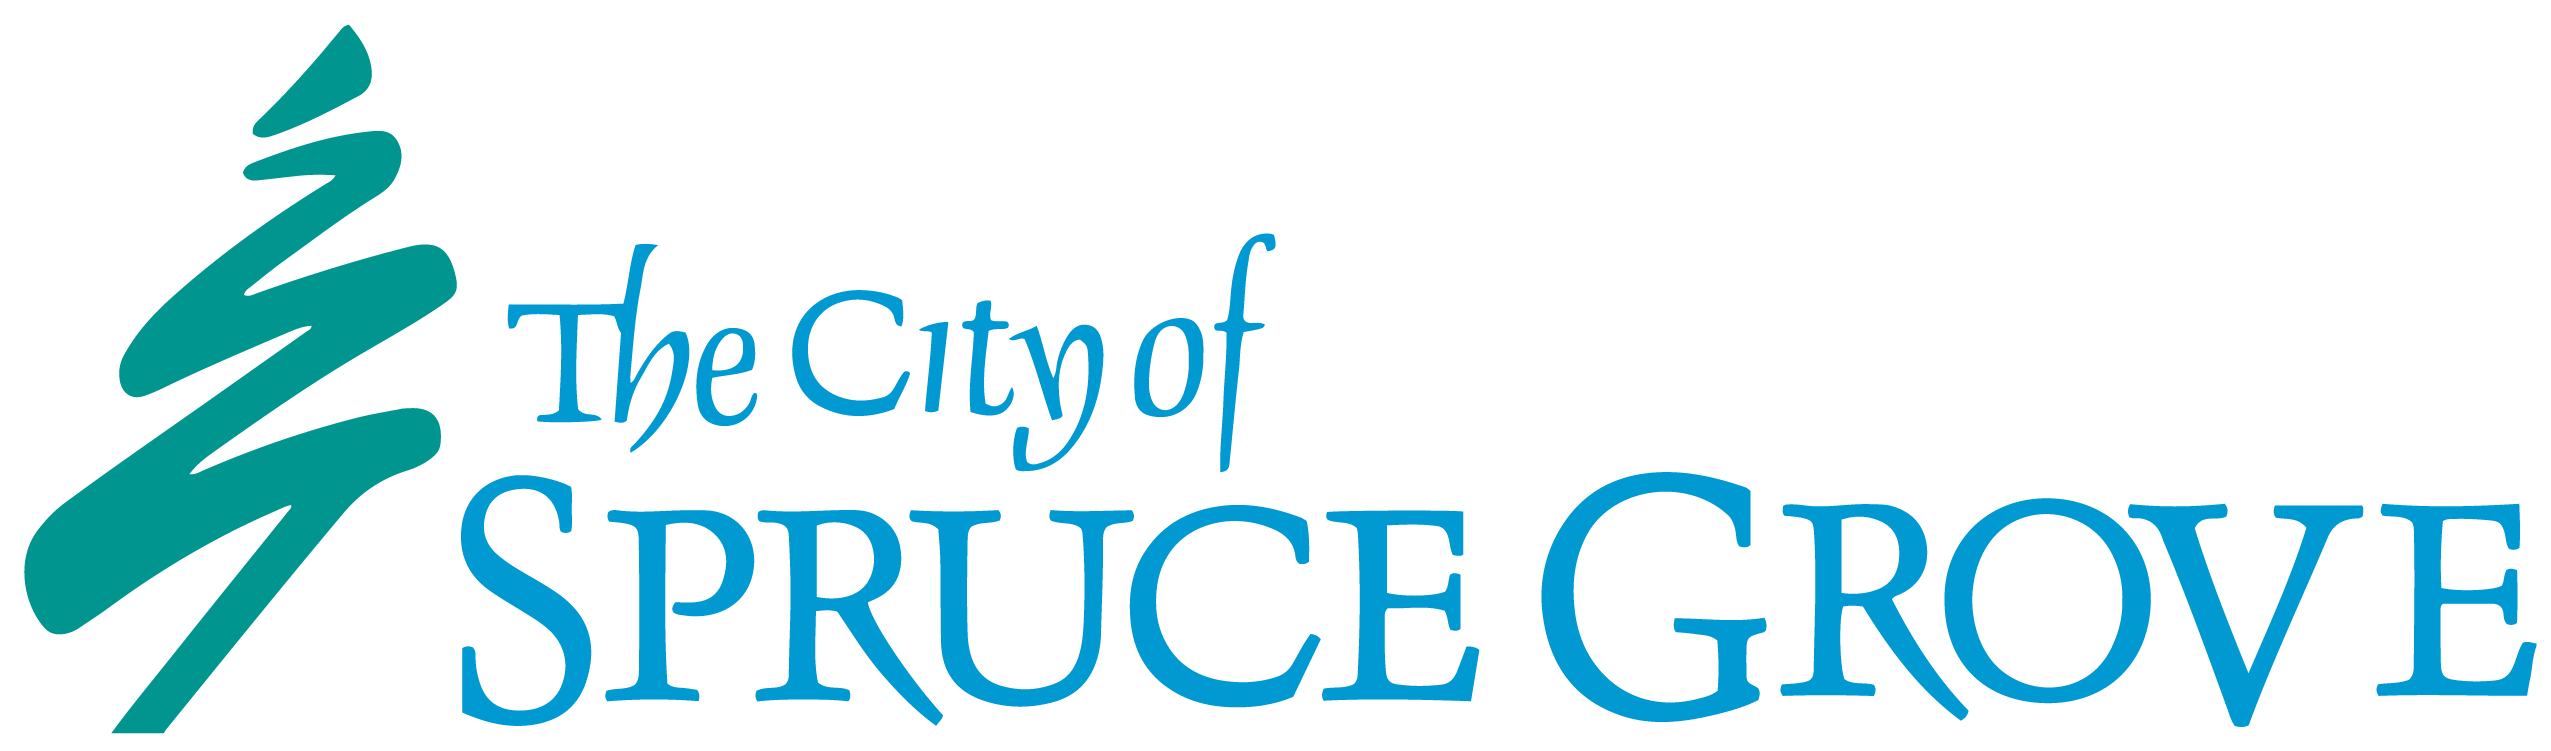 City of Spruce Grove logo